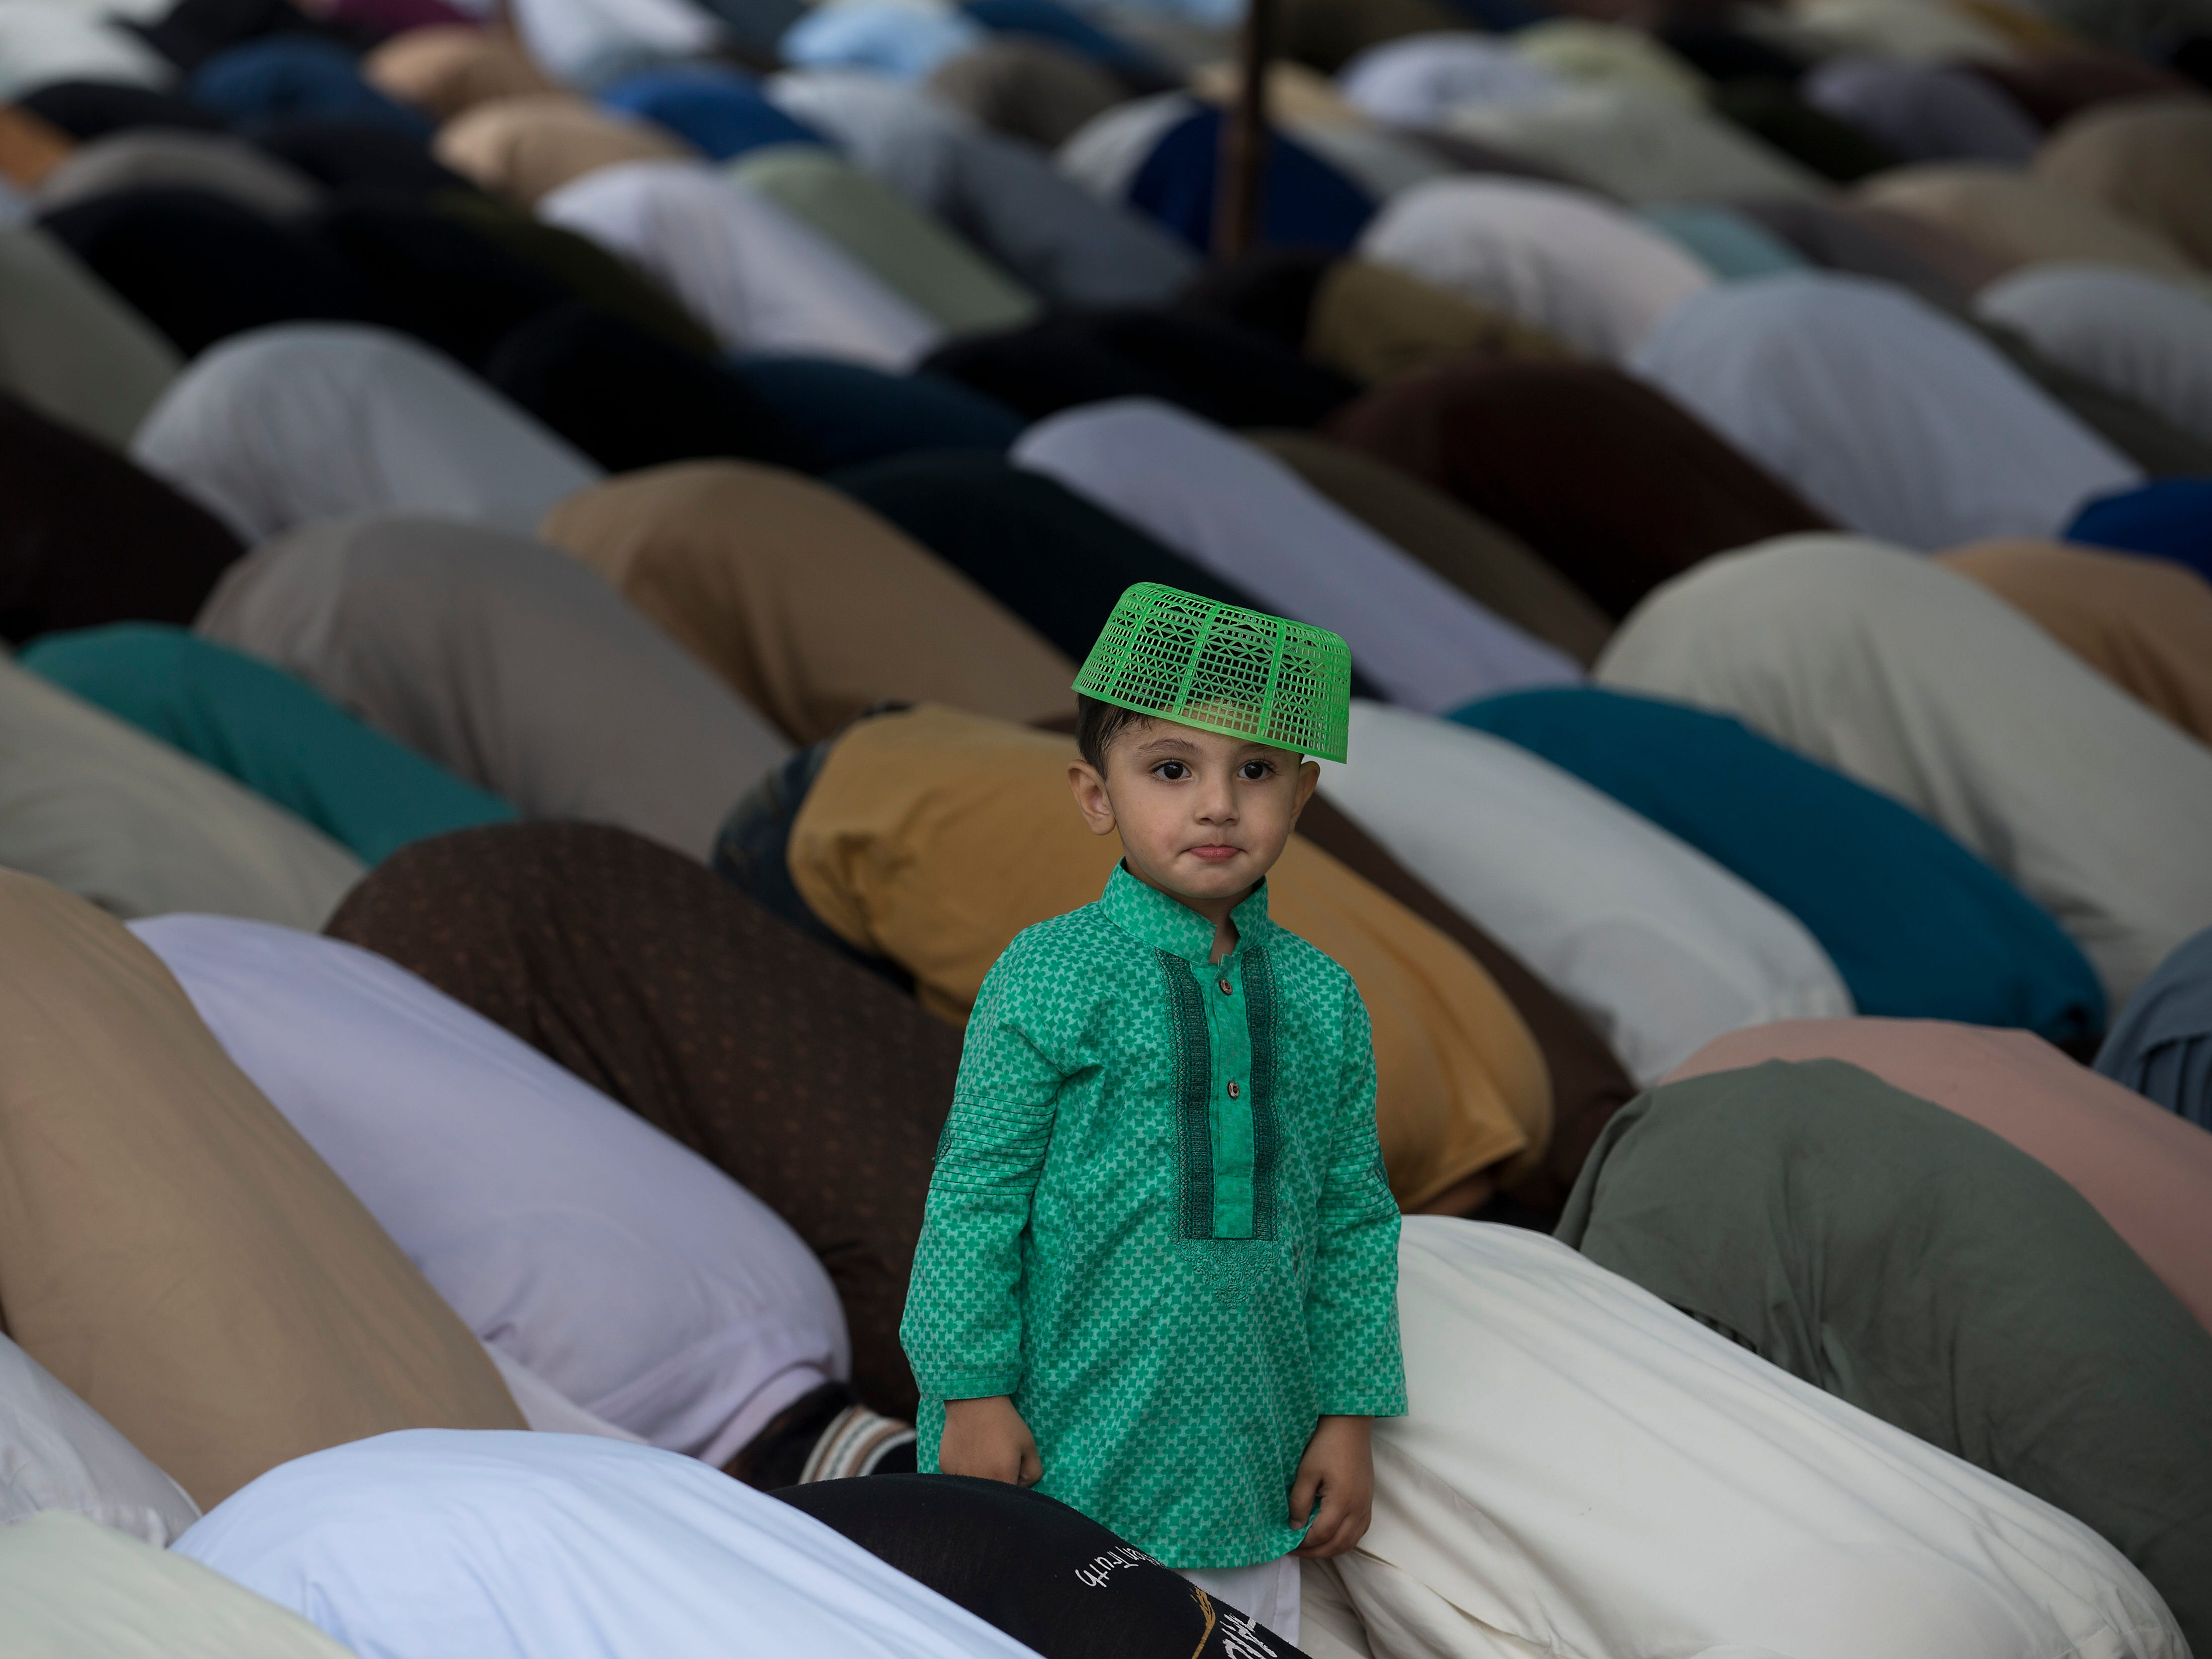 A Pakistani boy stands amid a crowd of Muslims offering prayers at a mosque on the second Friday of Ramadan in Rawalpindi, Pakistan, May 17, 2019. Muslims throughout the world are marking Ramadan, the holiest month in the Islamic calendar, in which devotees refrain from eating, drinking, smoking and sex from sunrise to sunset.